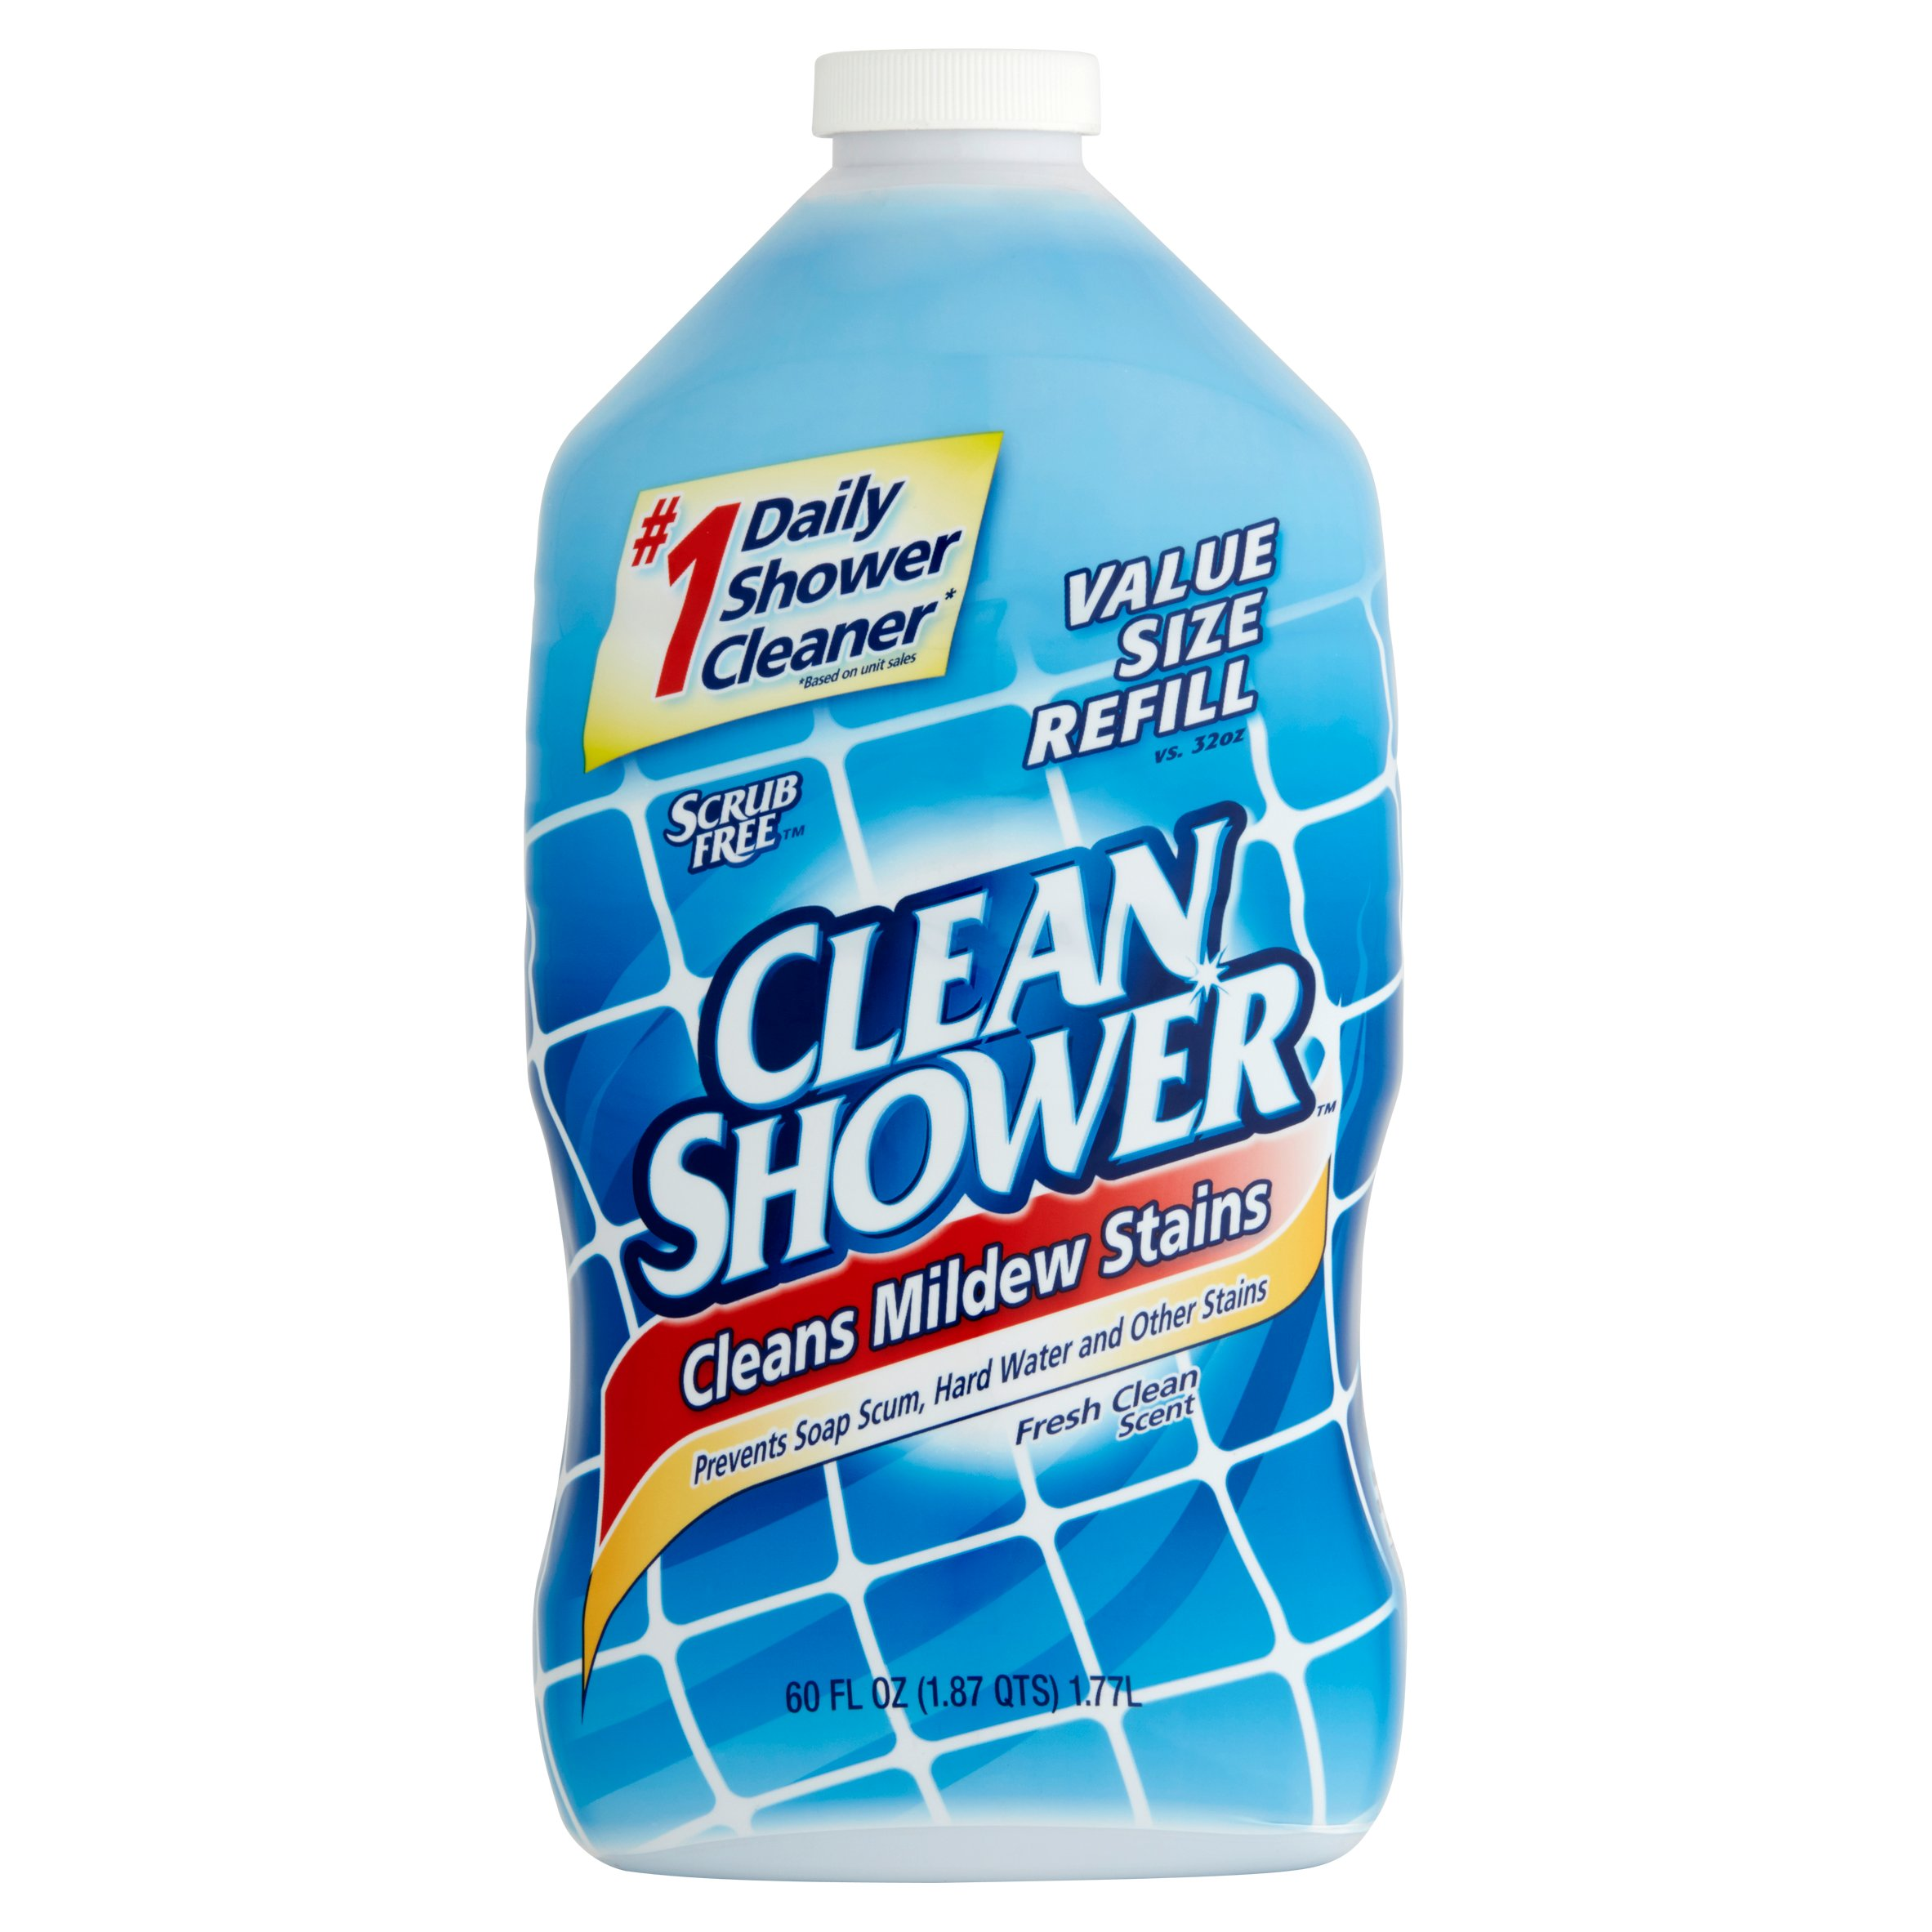 (2 pack) Clean Shower Daily Shower Cleaner Refill, 60 fl oz